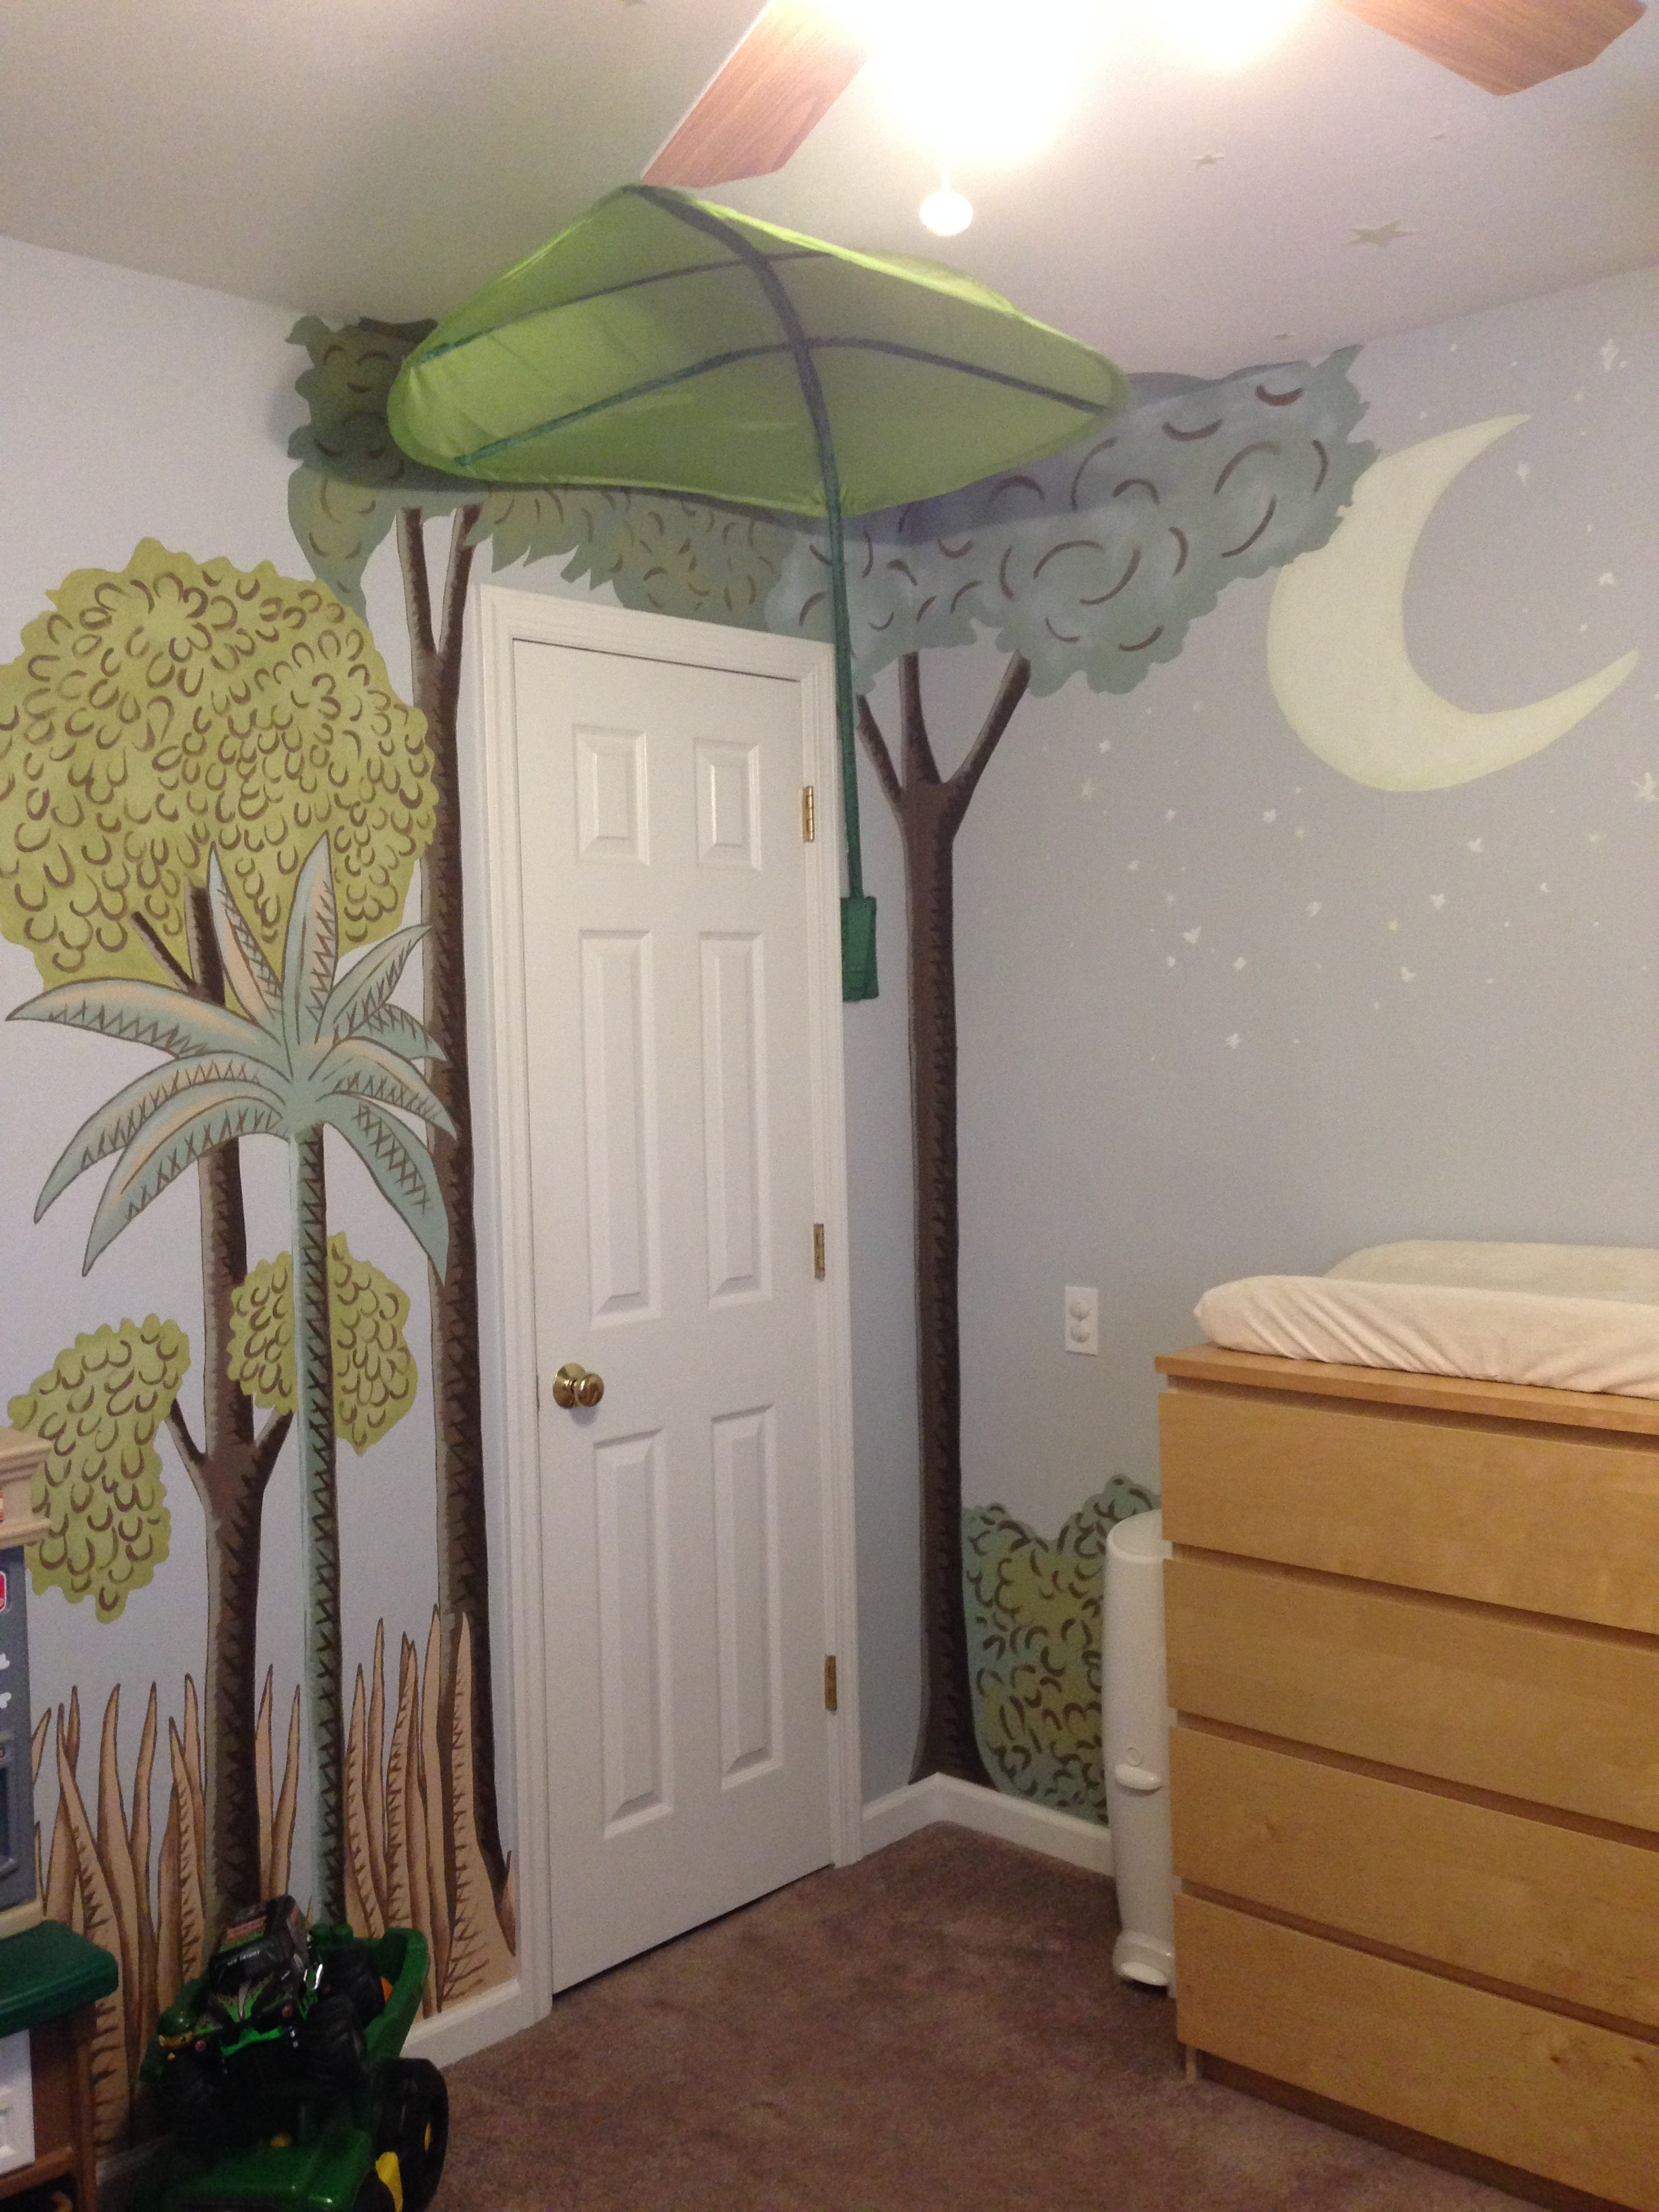 Where The Wild Things Are Bedroom Mural J Lee Syn